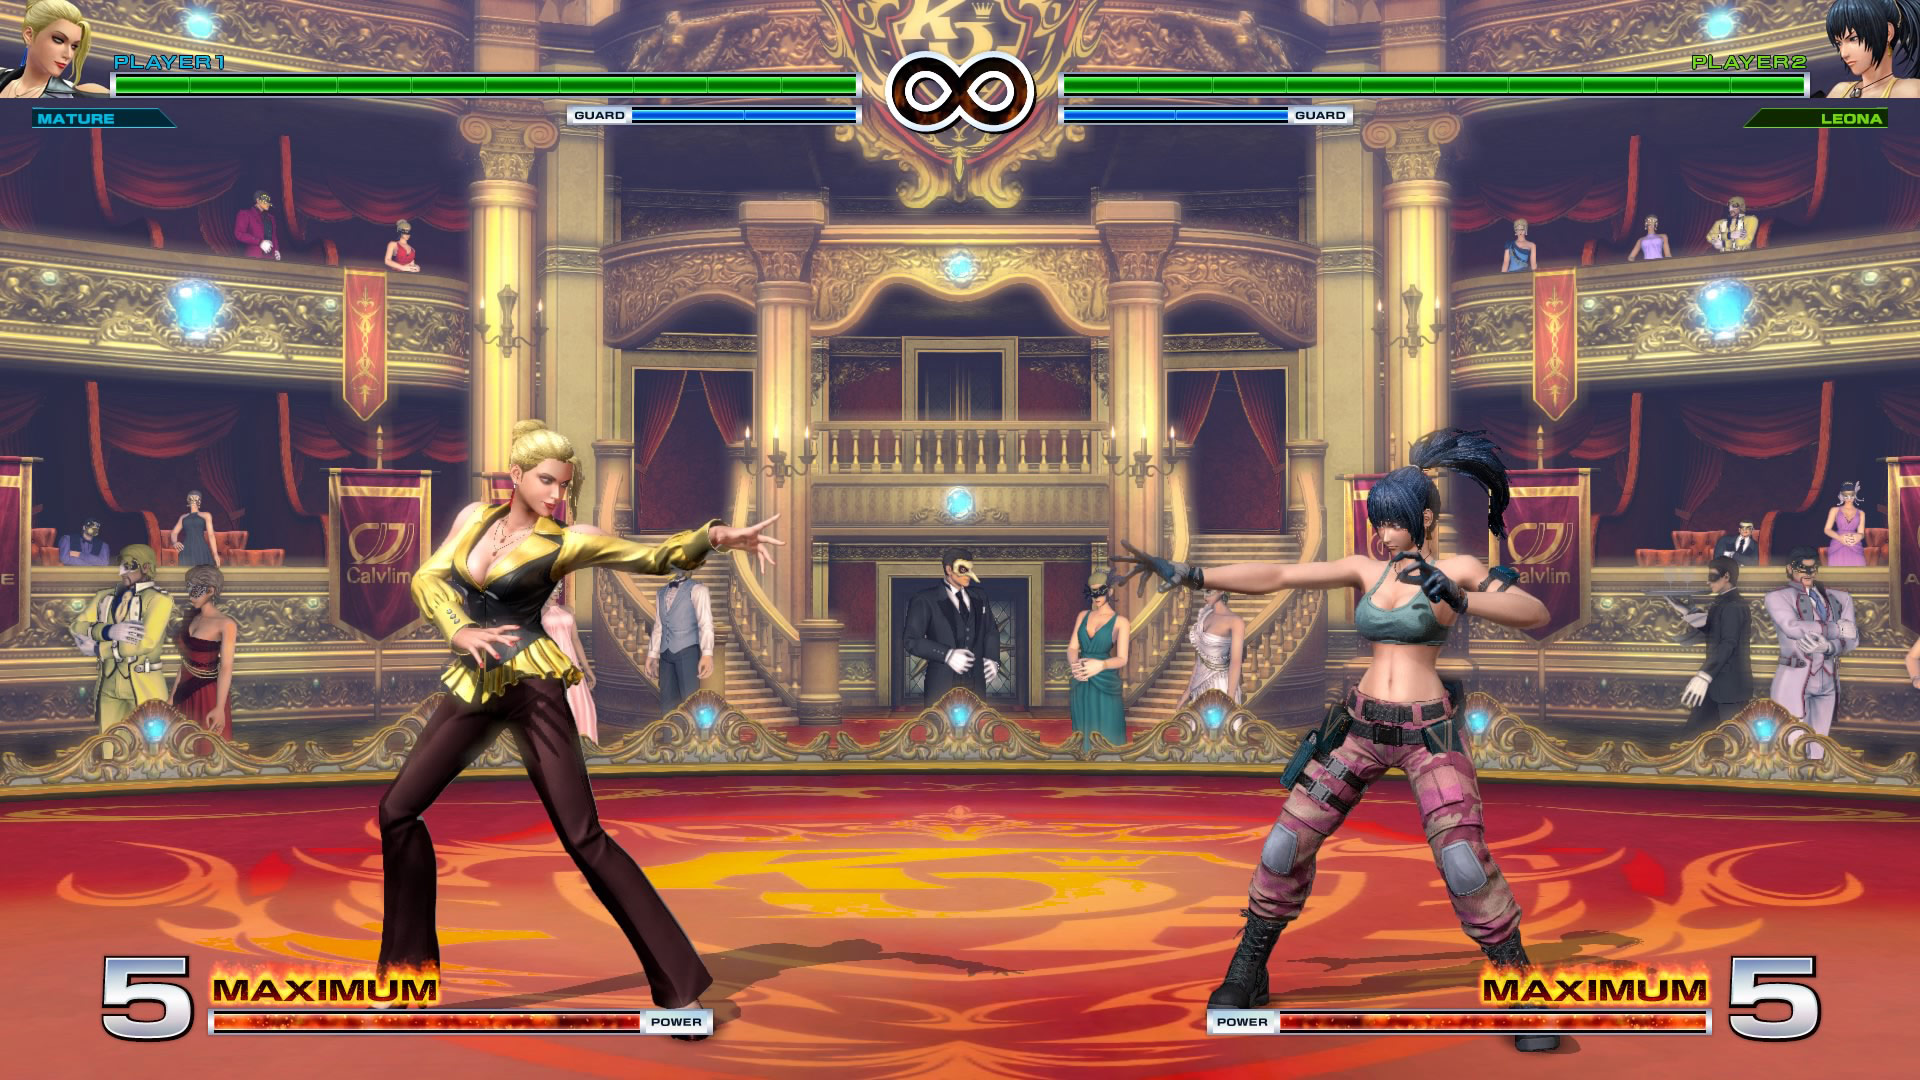 King of Fighters 14 1.10 graphics update 13 out of 60 image gallery